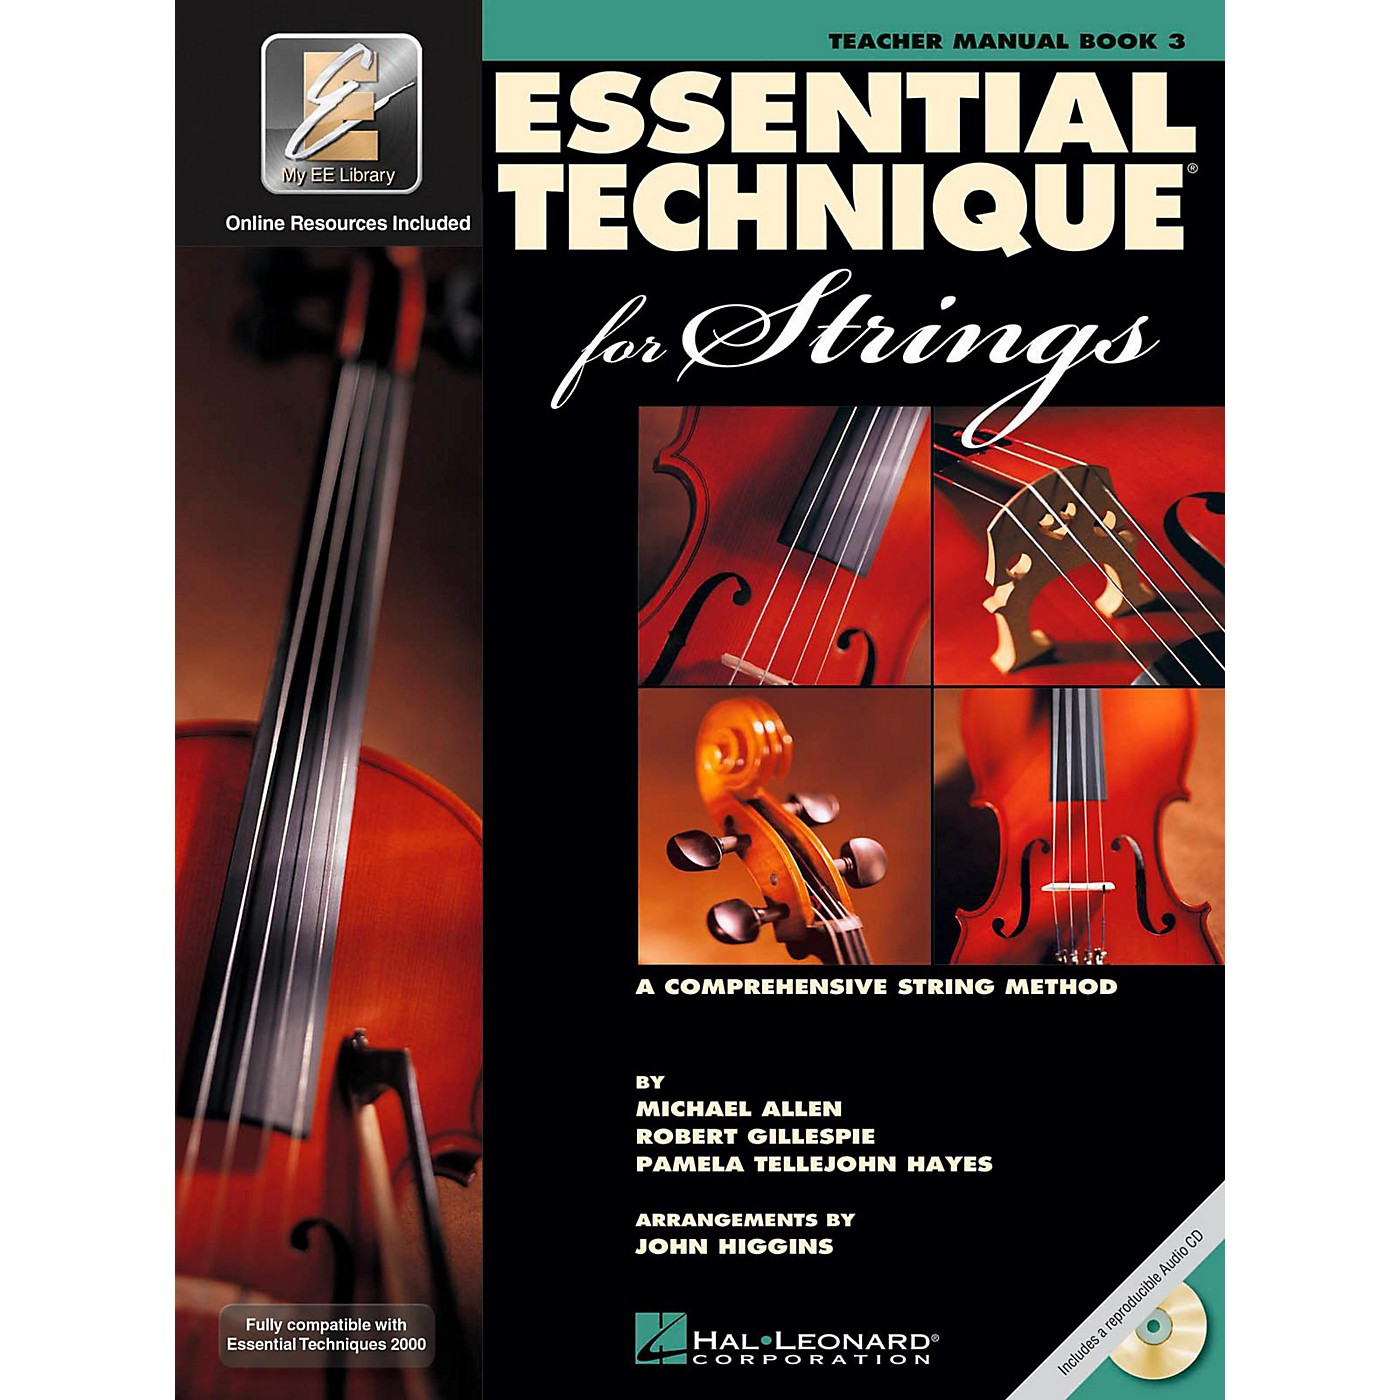 Hal Leonard Essential Technique for Strings - Teacher Manual (Book 3 with EEi and CD) thumbnail